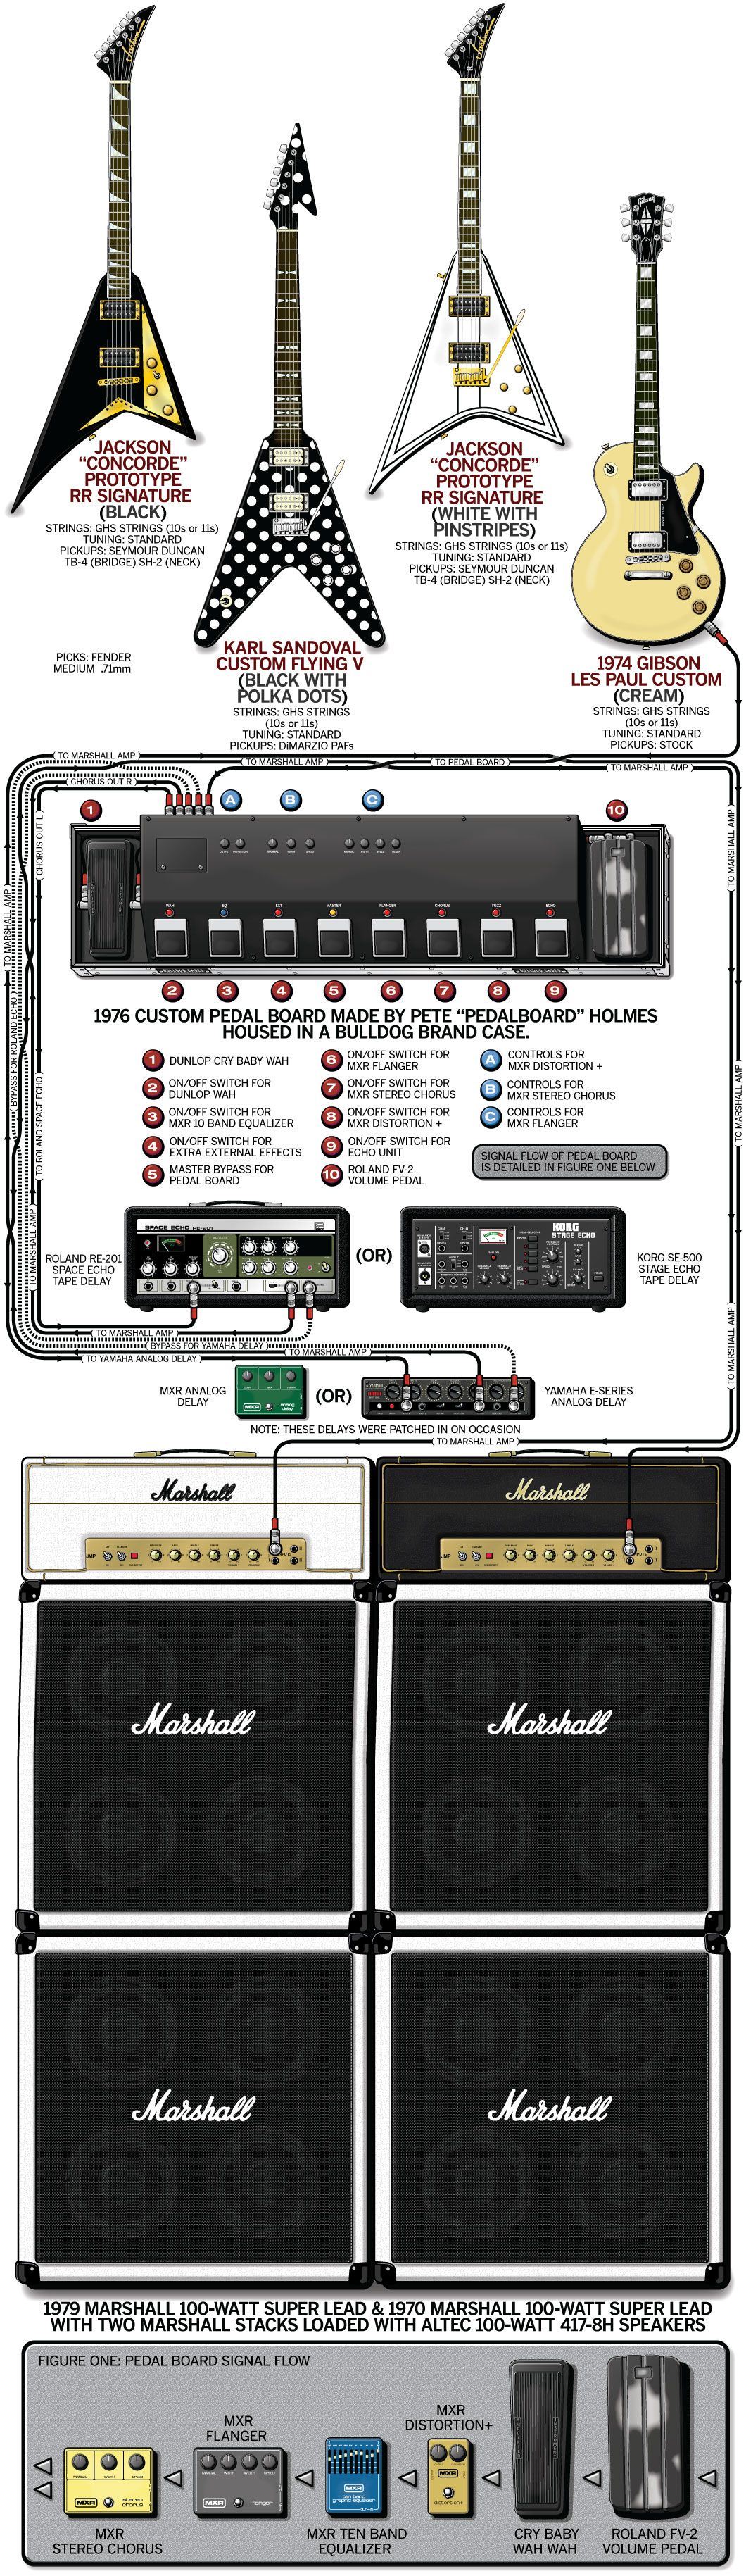 Randy Rhoads Guitar Rig For The Diary Of A Madman Tour 1981 My Diagram Furthermore Lap Steel Together With Electric